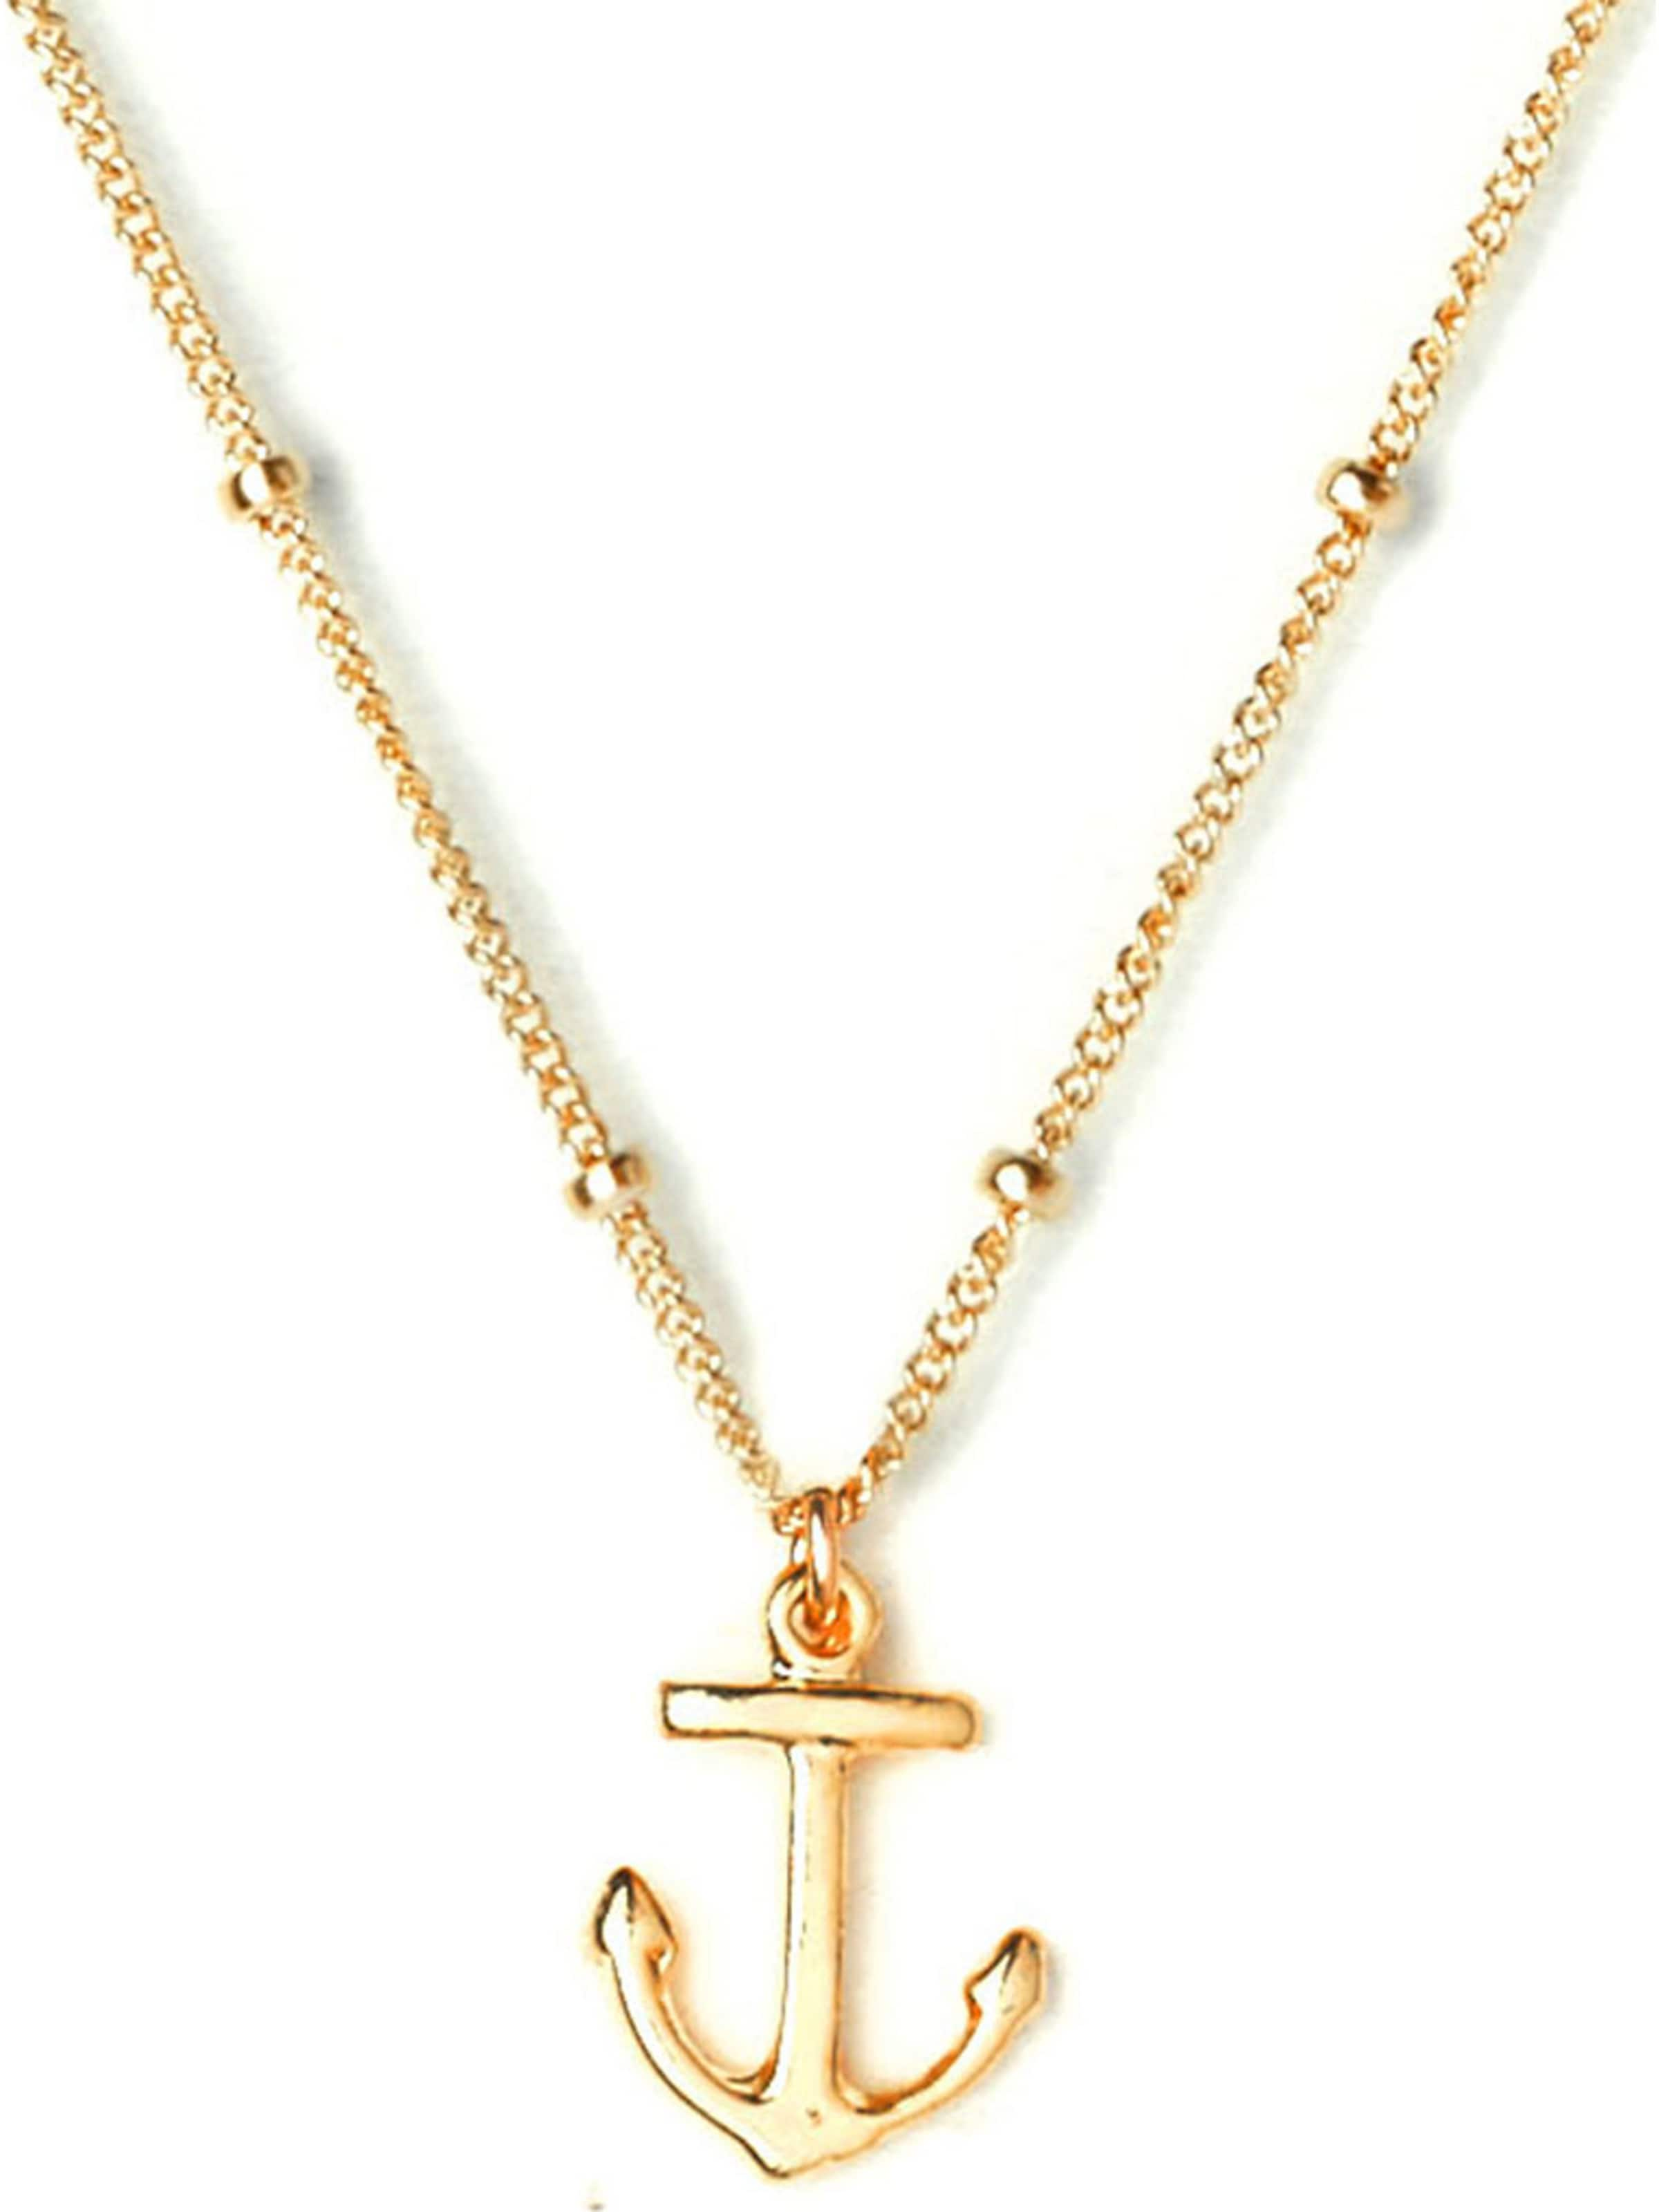 'anchor Nes023g' In Kette Koshikira Gold 43LAjq5R